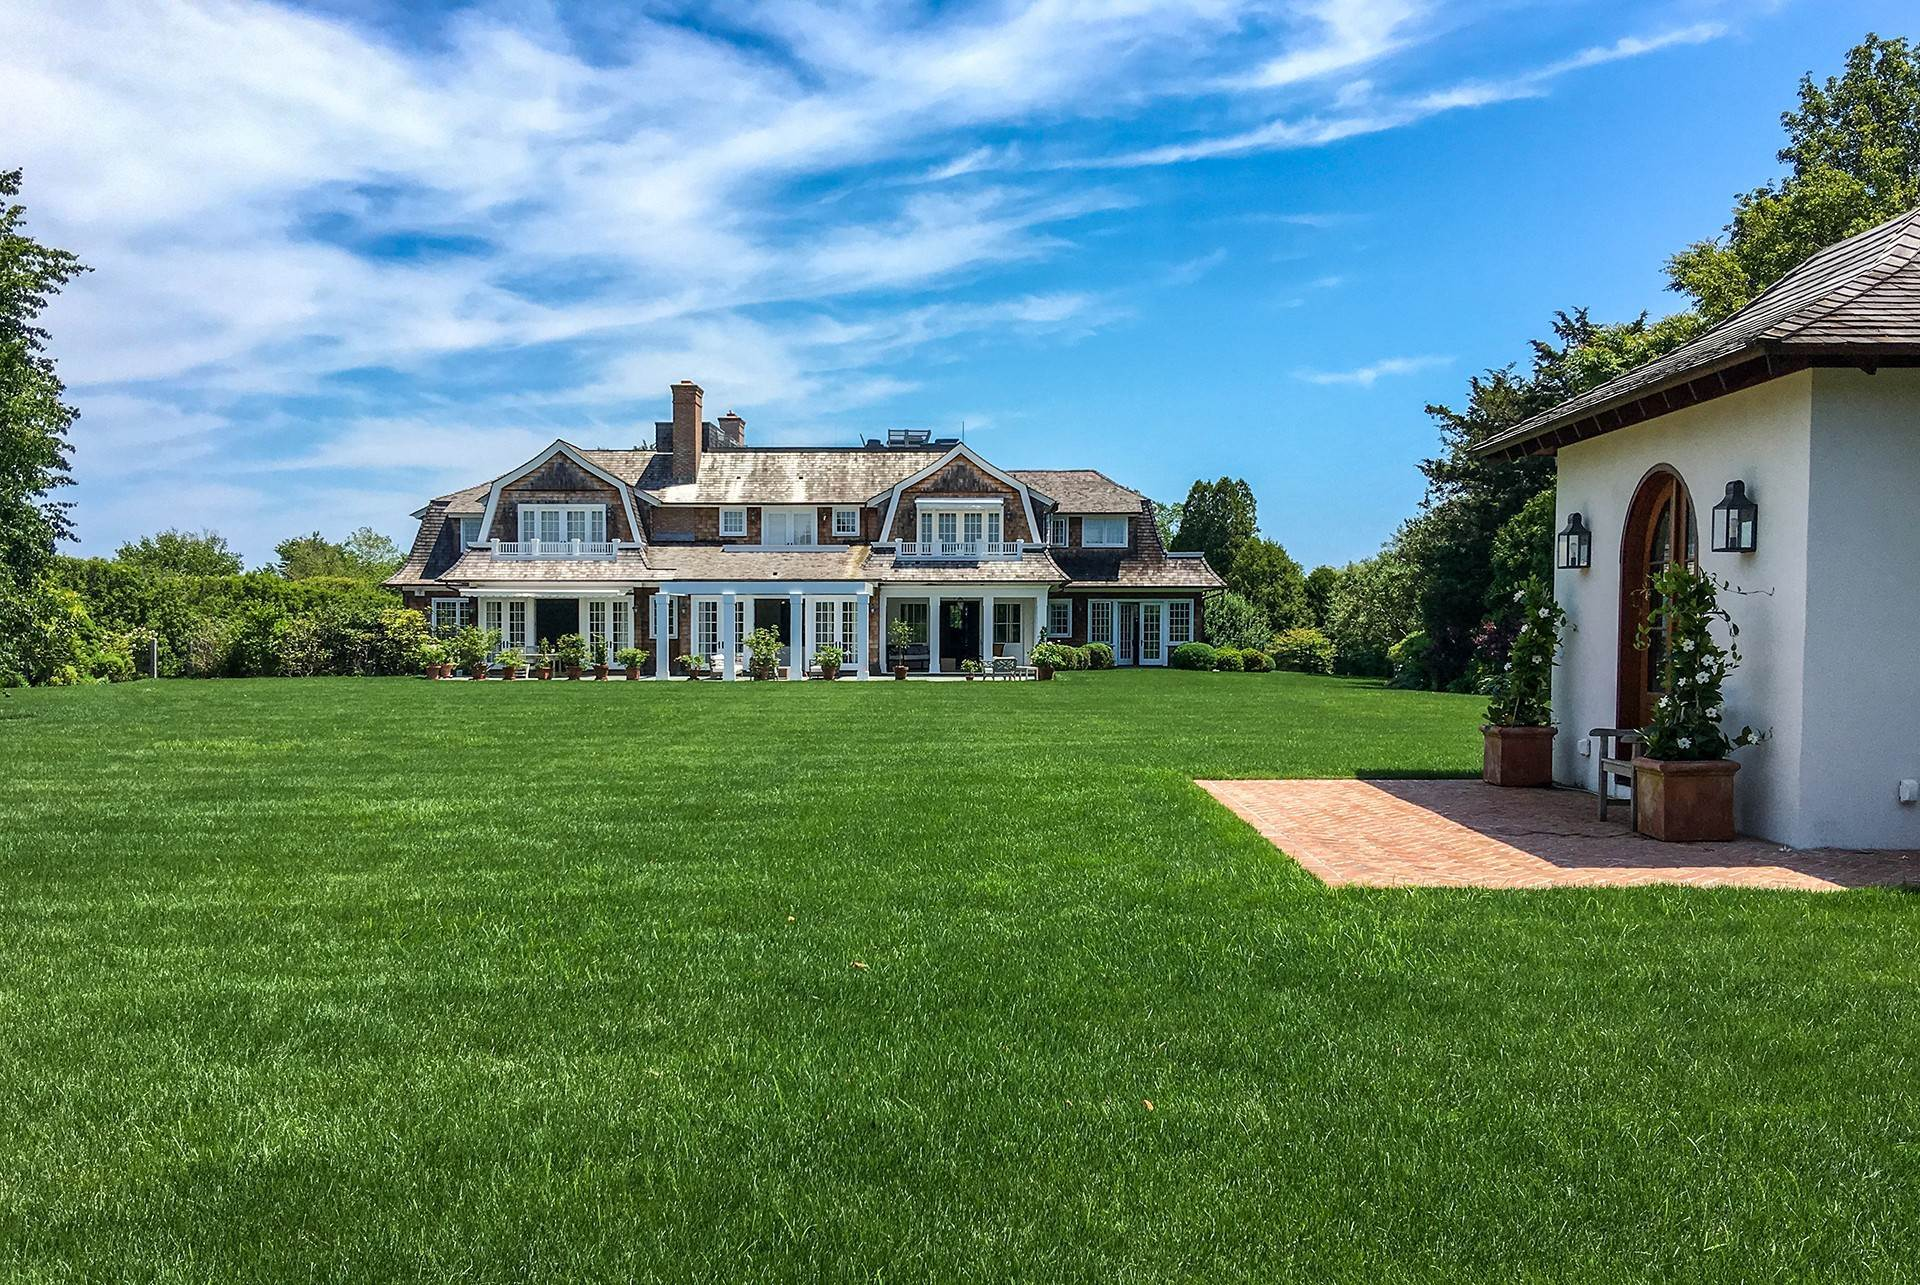 Single Family Home at Sagaponack Country Retreat South Of The Highway Sagaponack Village, NY 11962